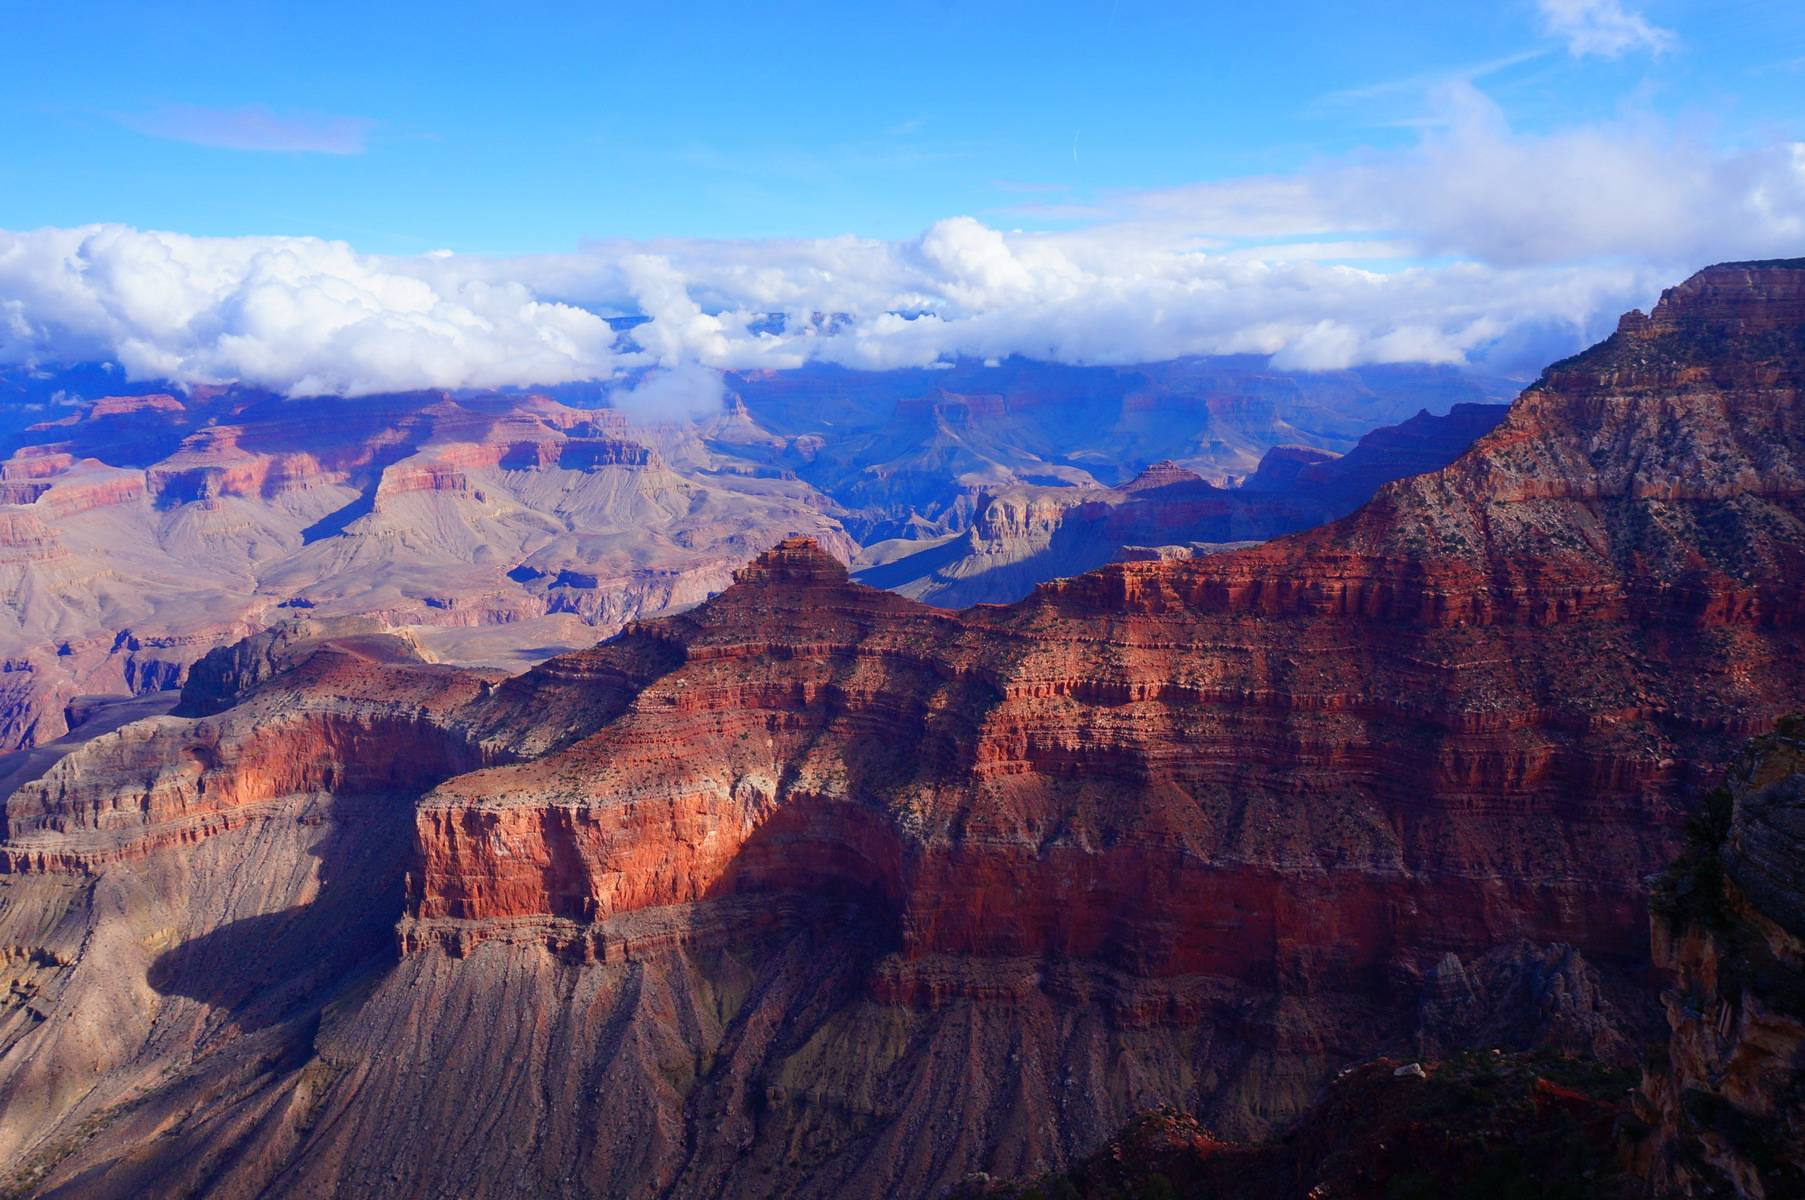 las vegas grand canyon helicopter tour deals with Grand Kingdom Ecostar Helicopter Tour on YOSEMITE FALLS together with Maverick Helicopters Wind Dancer Tour furthermore Top Tips For Touring The National Grand Canyon By Helicopter With Children as well Grand Canyon Helicopter Tours Out Of Flagstaff further Short Tours.